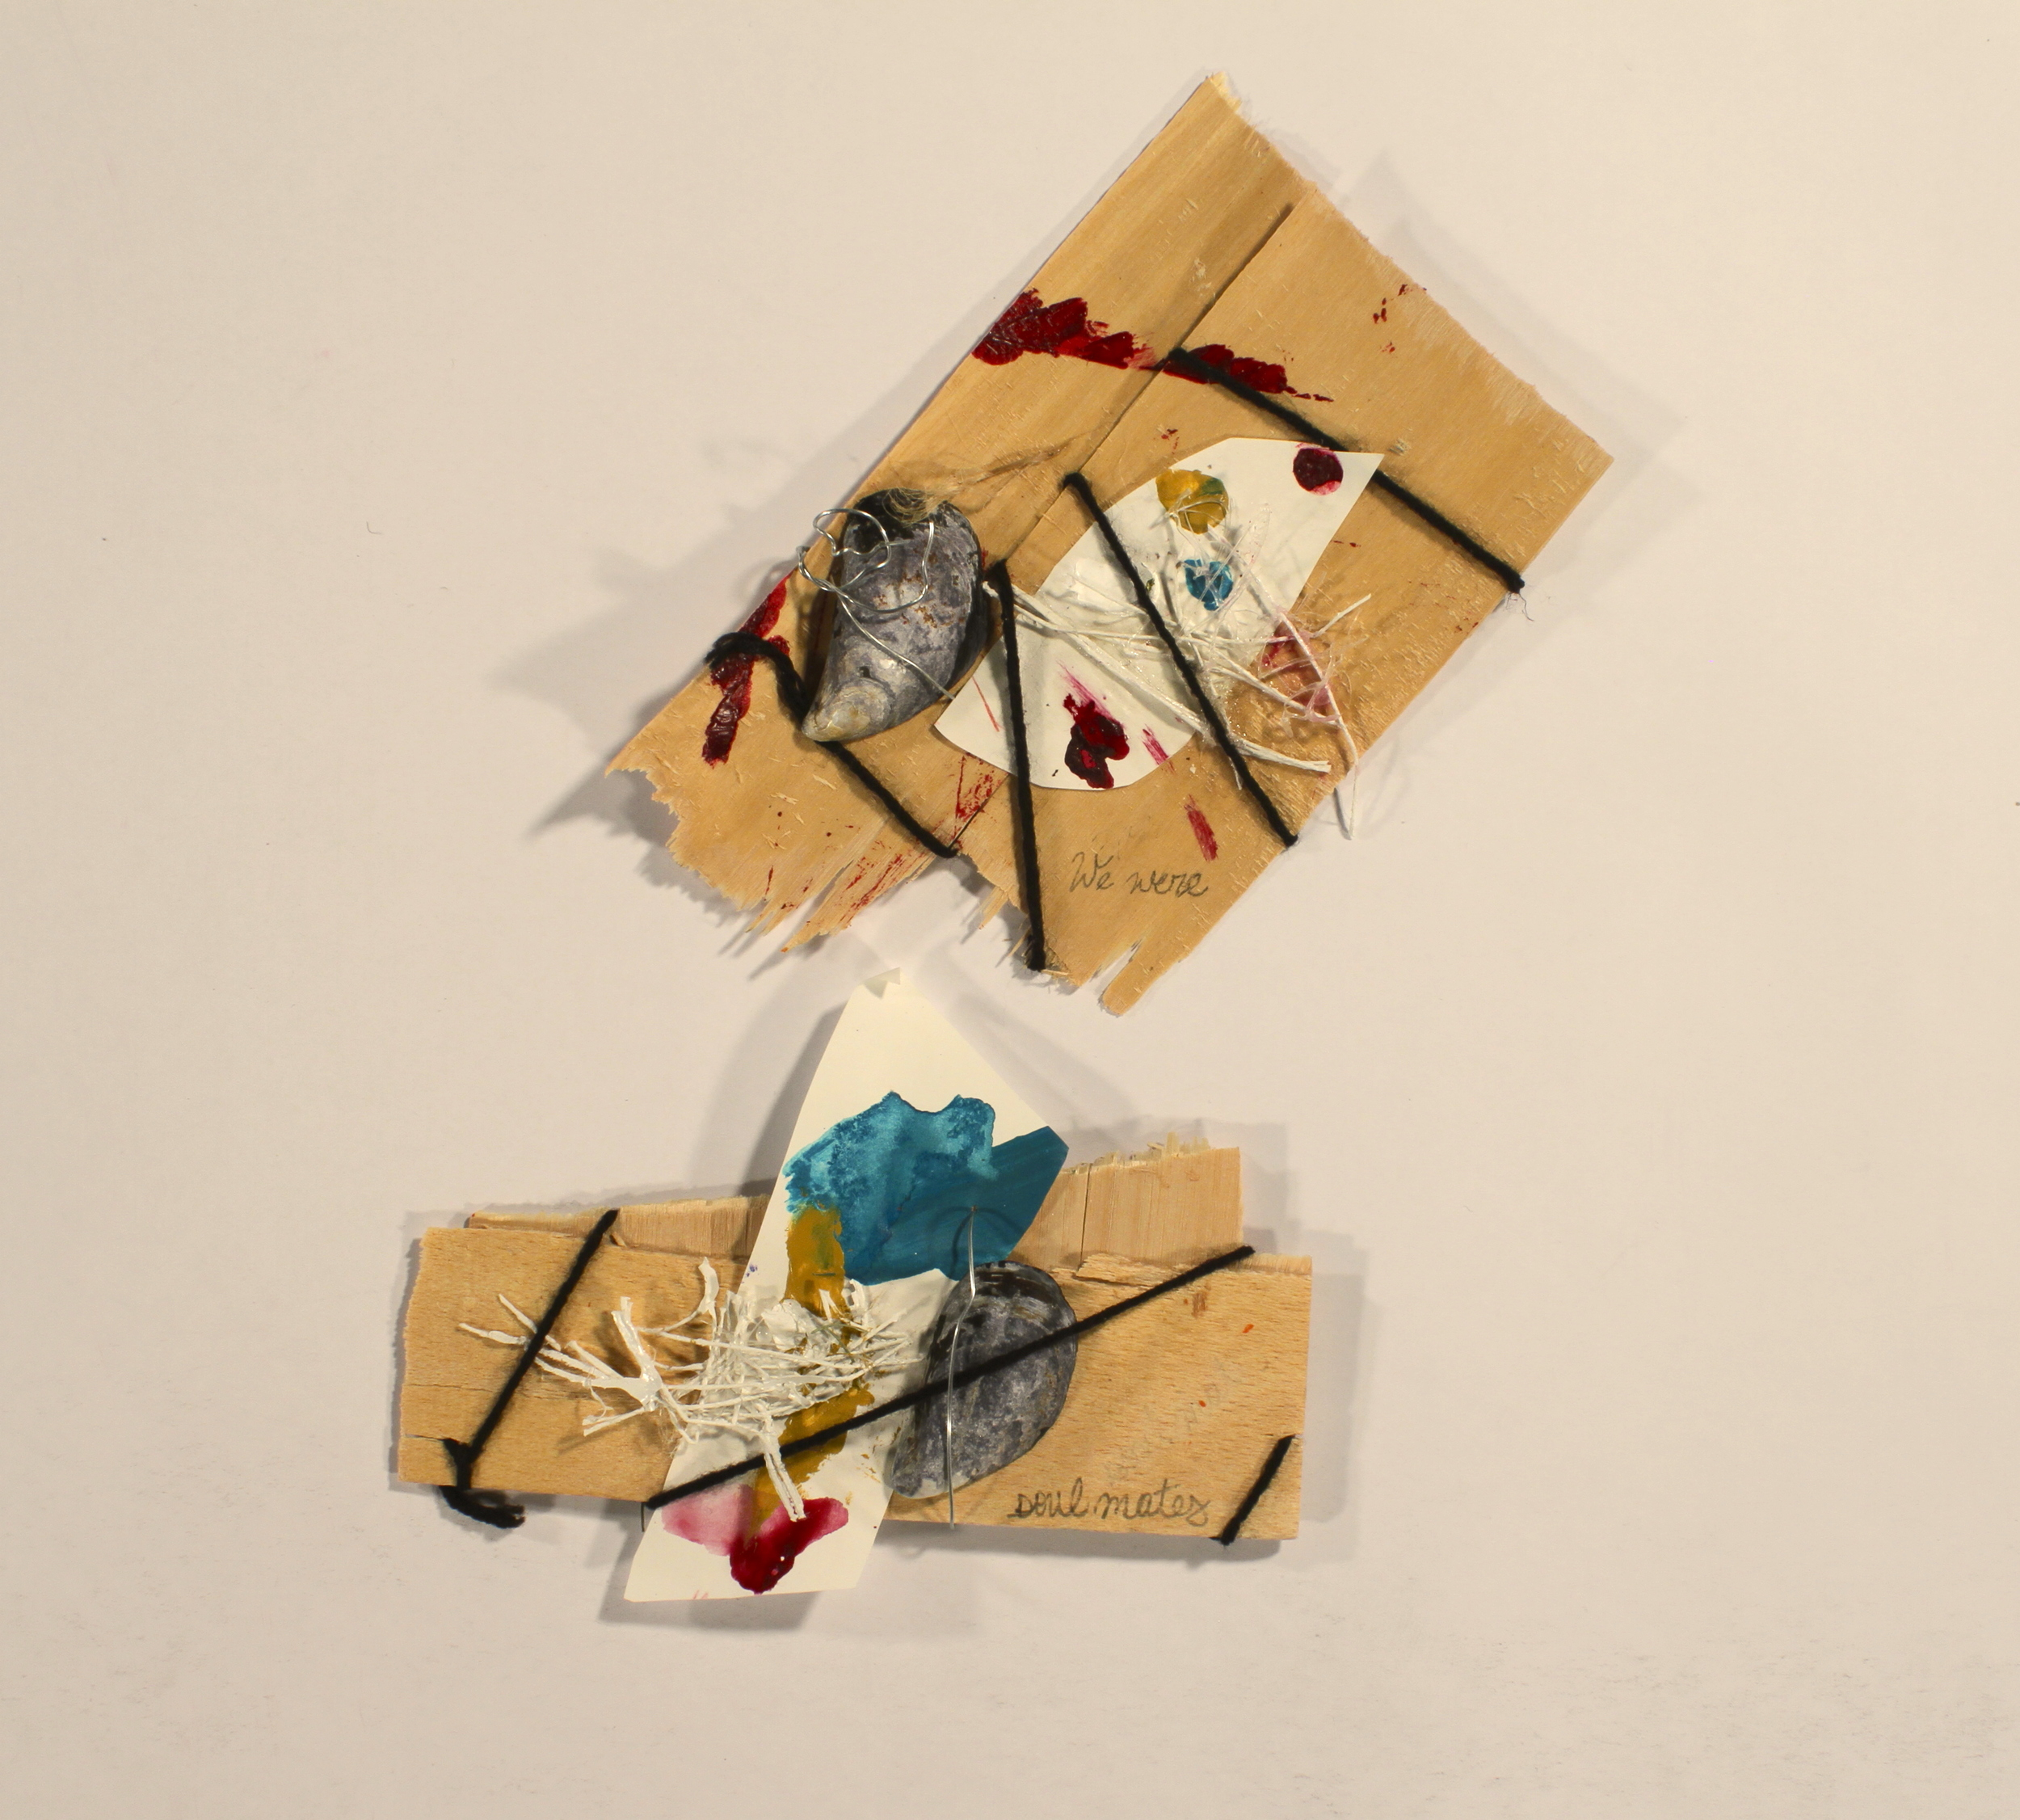 Missunderstandings - Soulmates  2014, wood, yarn, paper, hot glue, mussels, wire, acrylic, 11in x 7in